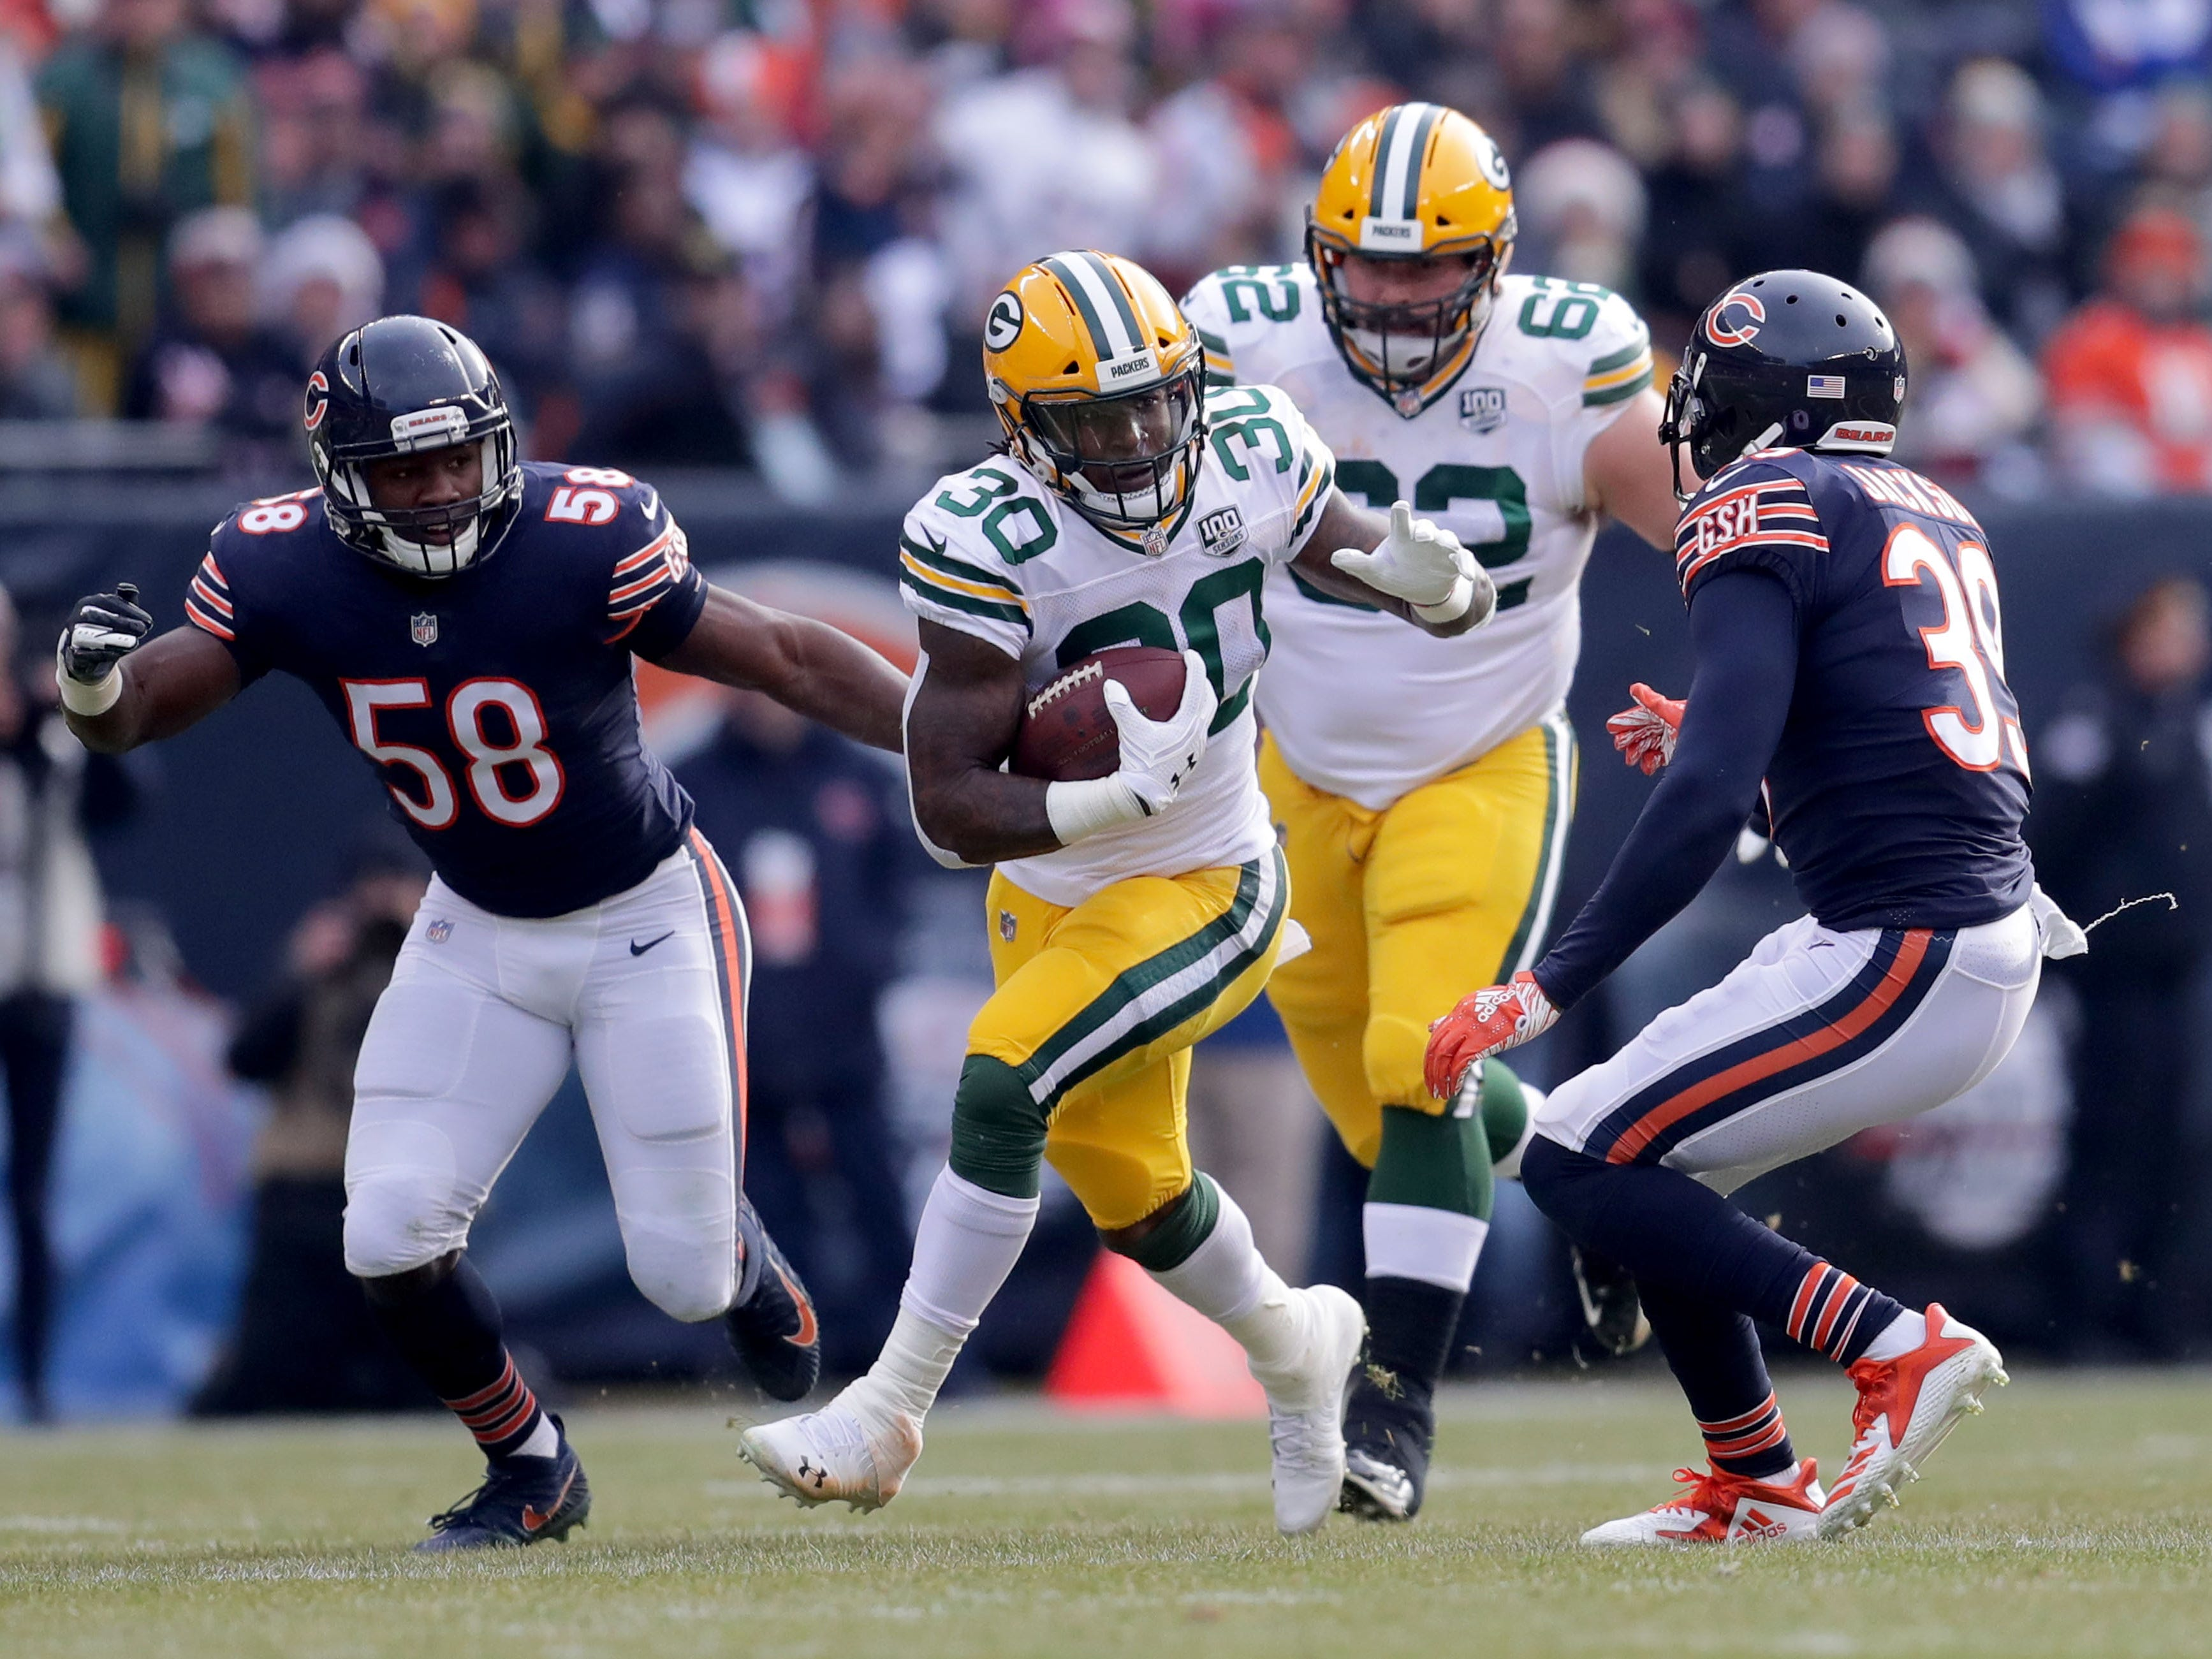 Green Bay Packers running back Jamaal Williams runs with the ball during the 1st half of the Green Bay Packers game against the Chicago Bears at Soldier Field Sunday, Dec. 16, 2018, in Chicago. Photo by Mike De Sisti / The Milwaukee Journal Sentinel